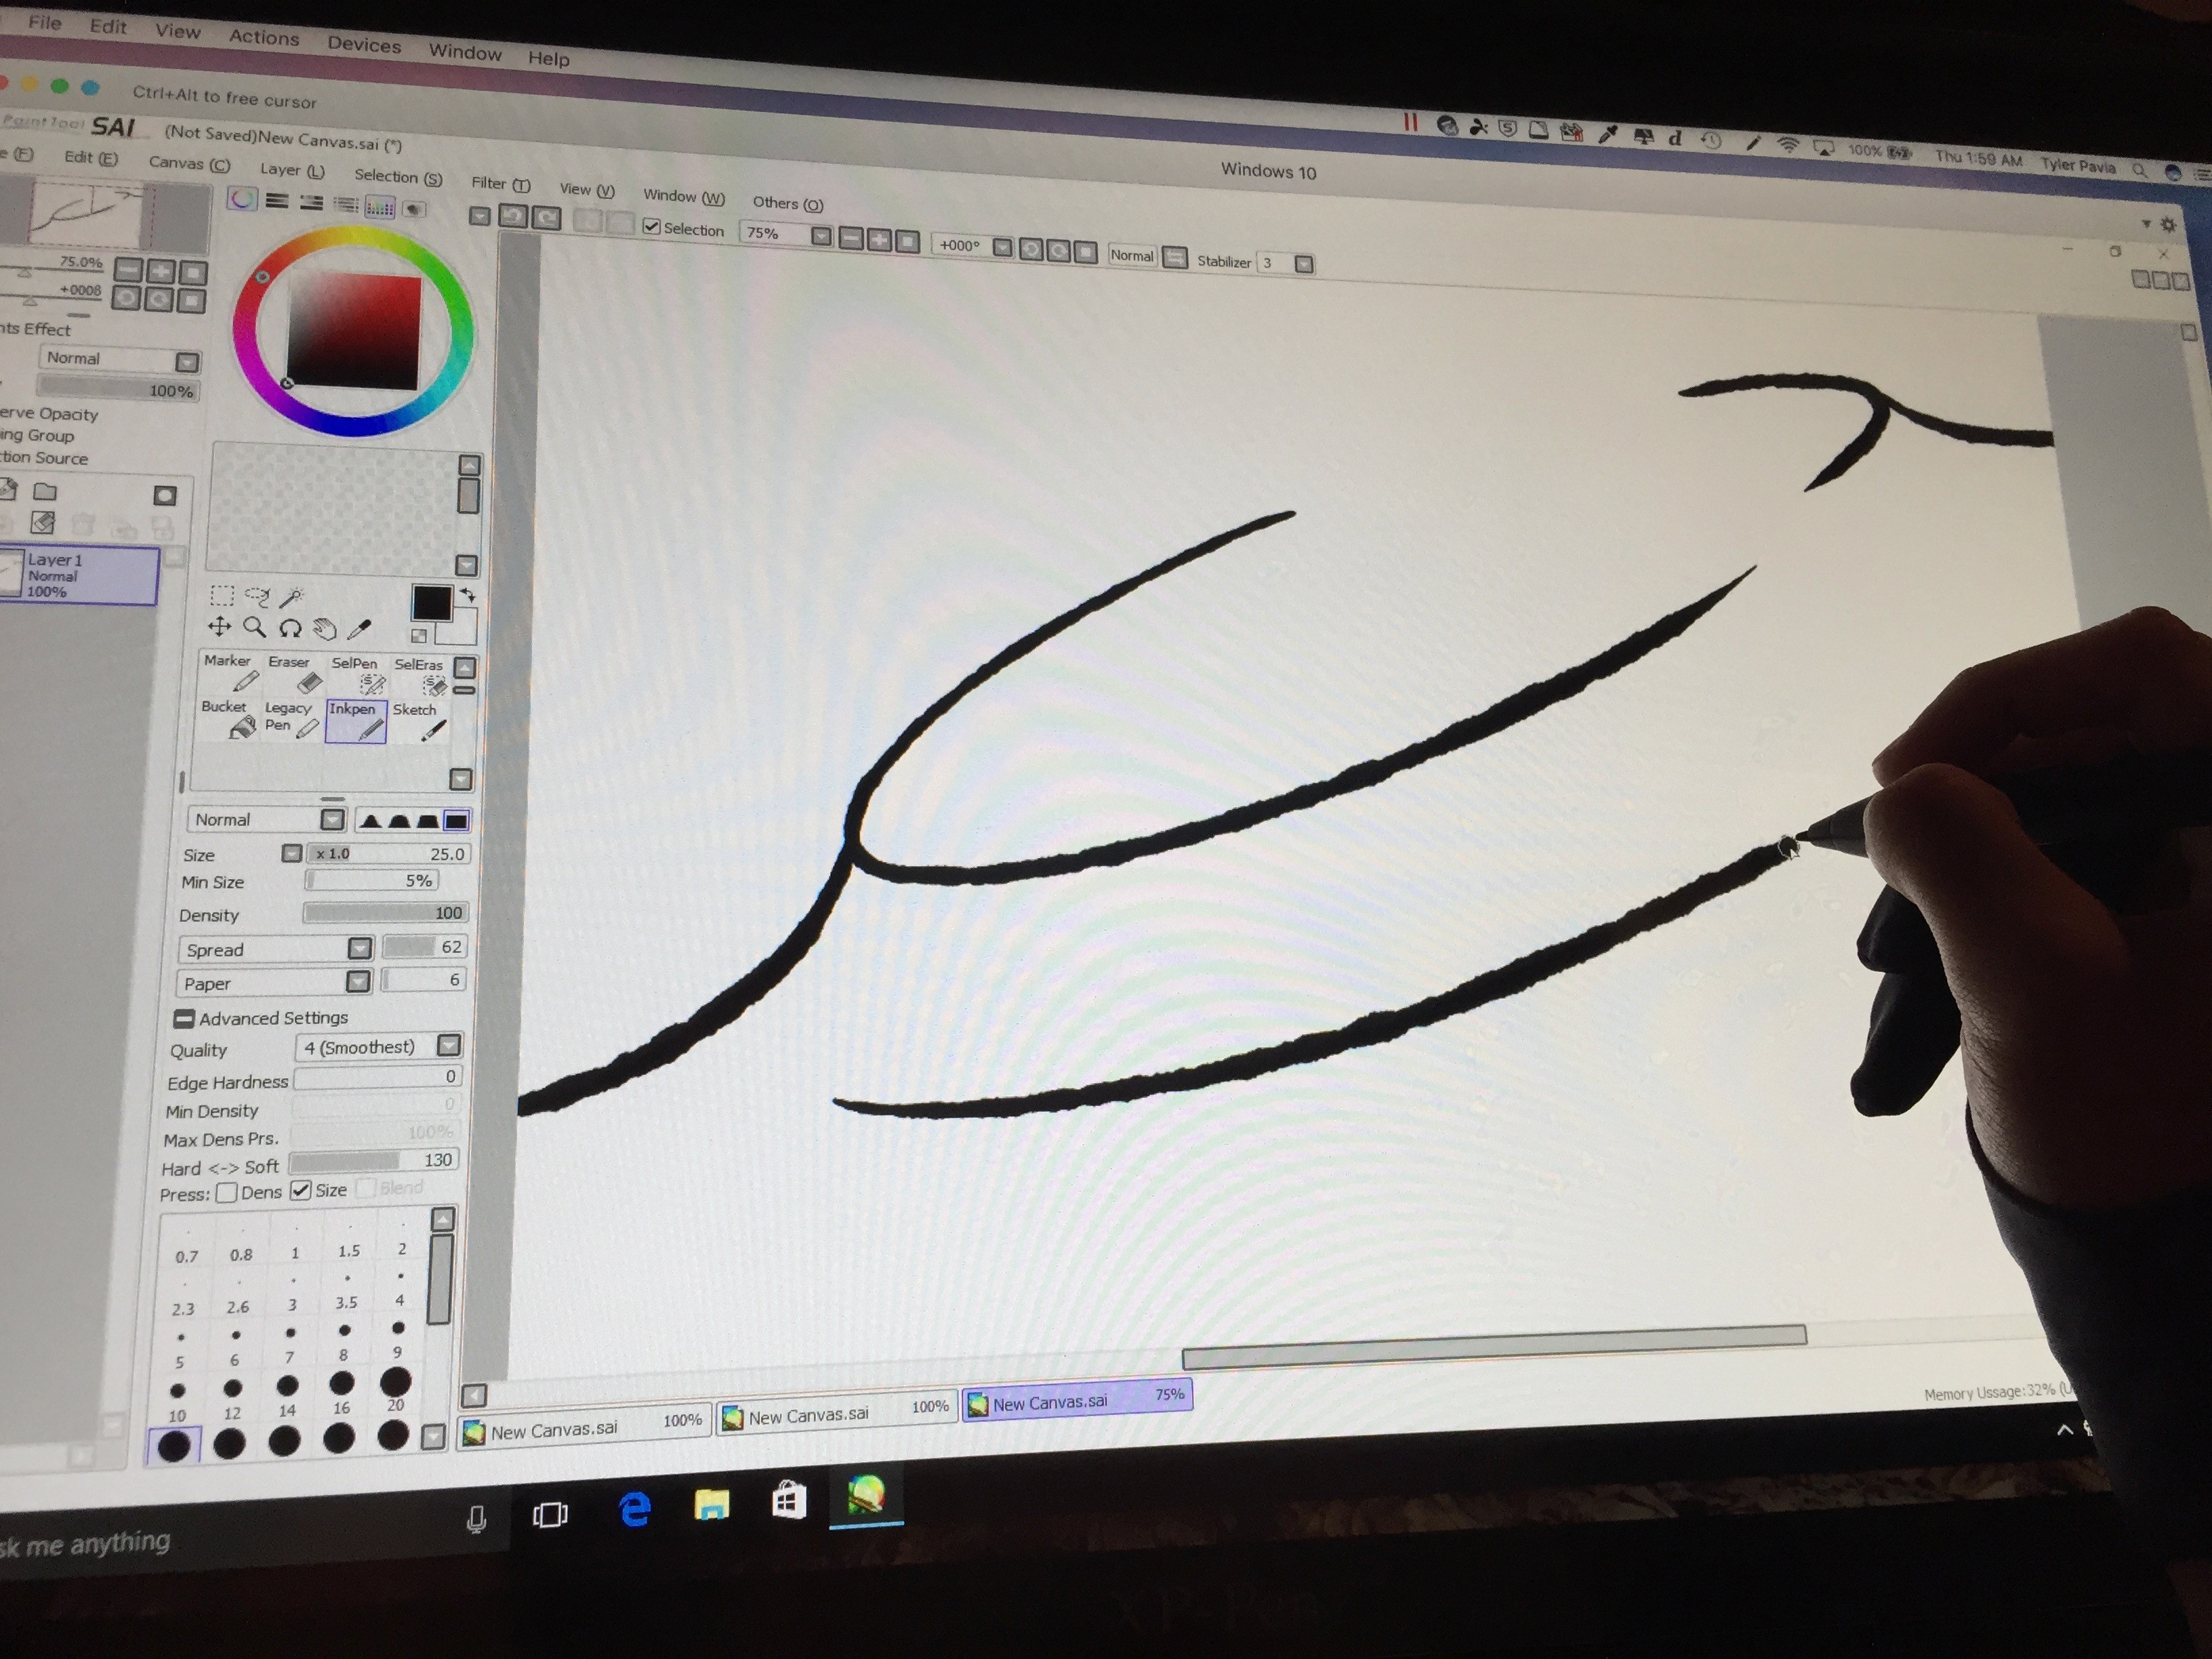 paint tool sai free download full version english no trial